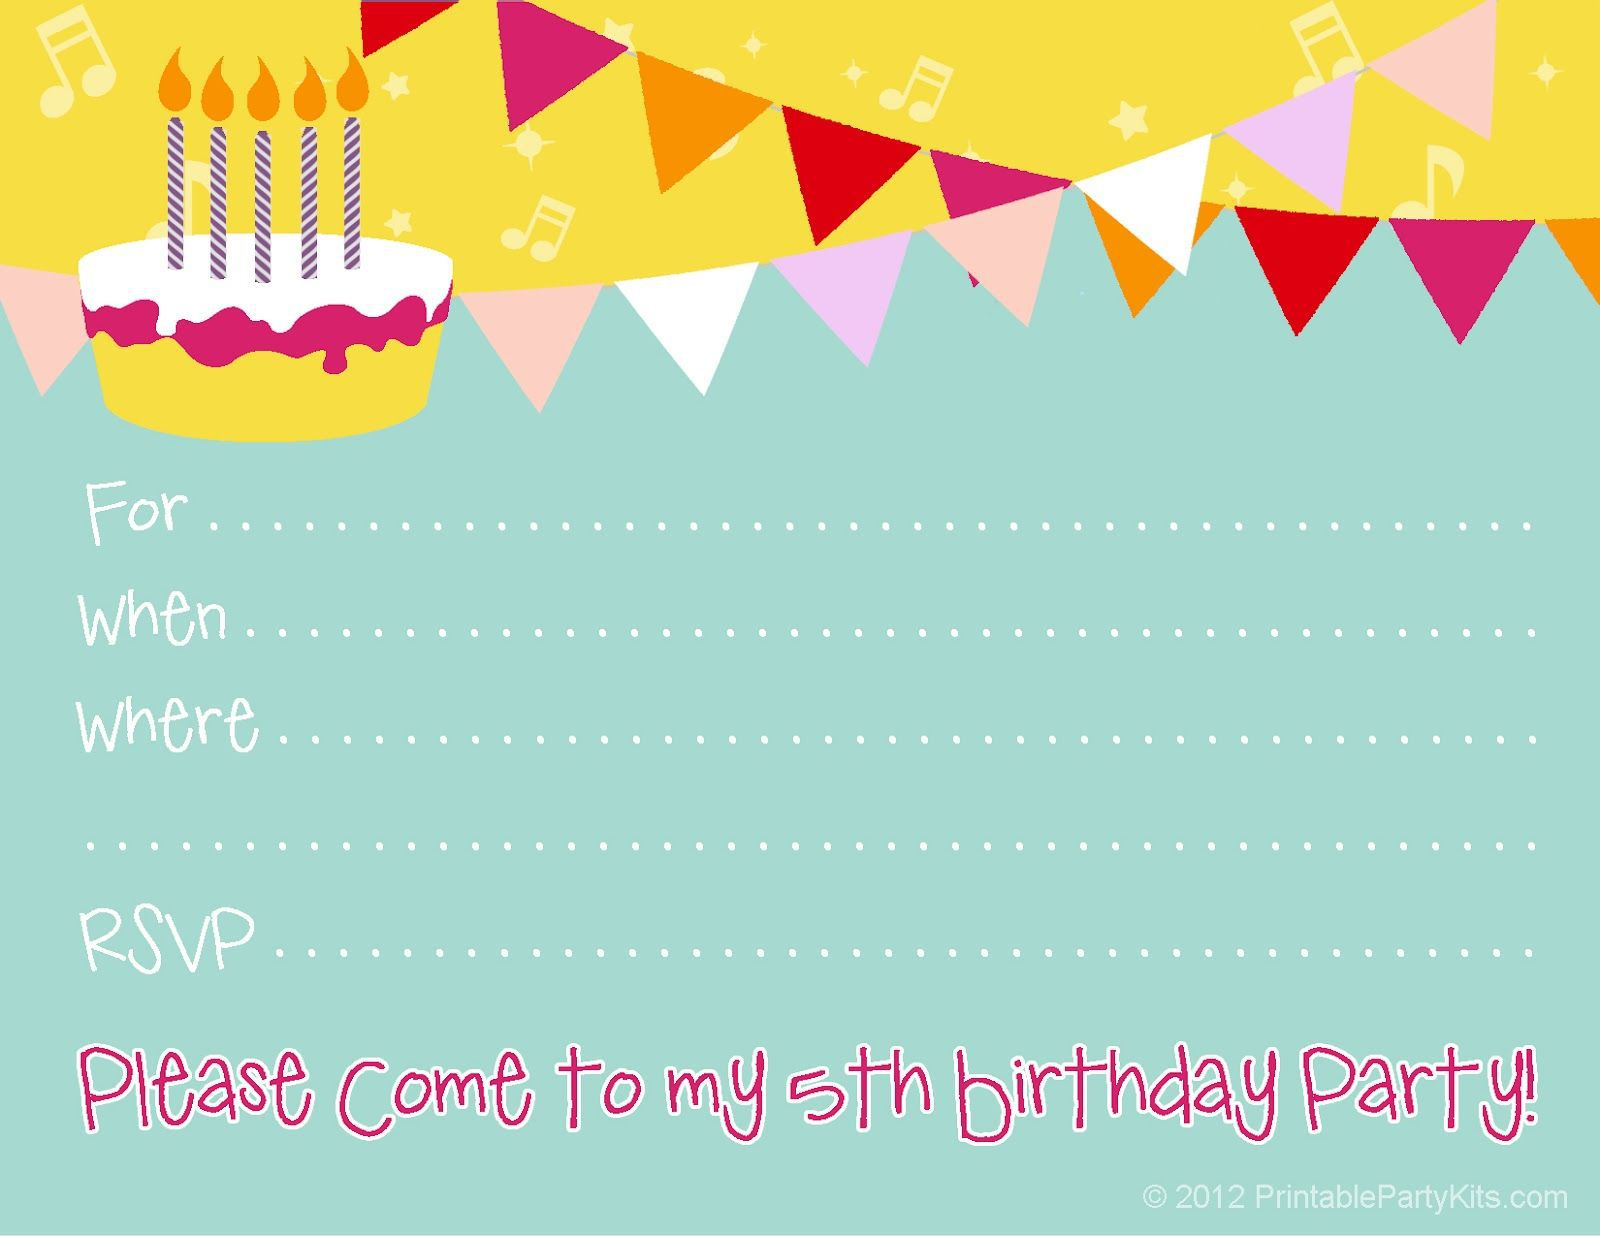 007 Awful Free Online Birthday Party Invitation Template Example  Templates MakerFull